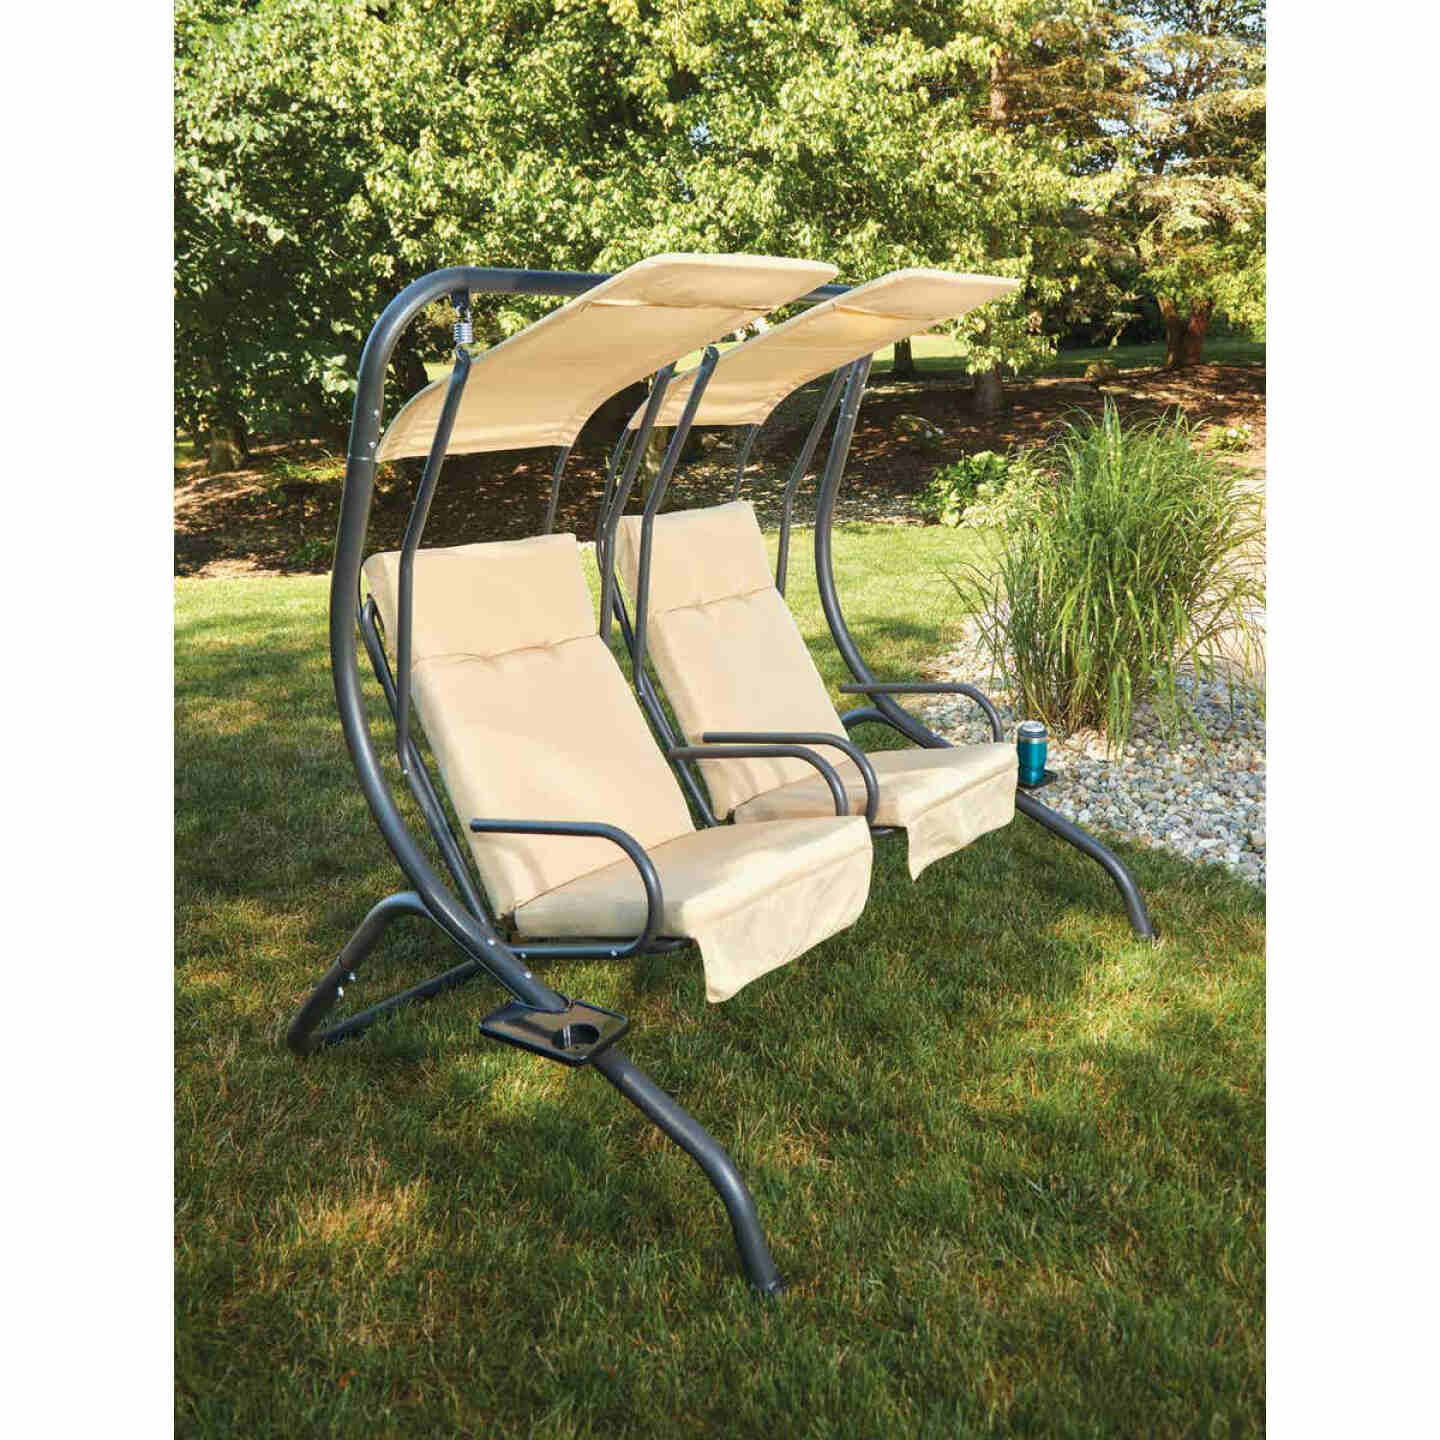 Outdoor Expressions 2-Person 67 In. W. x 67 In. H. x 53.5 In. D. Tan Patio Swing Image 5